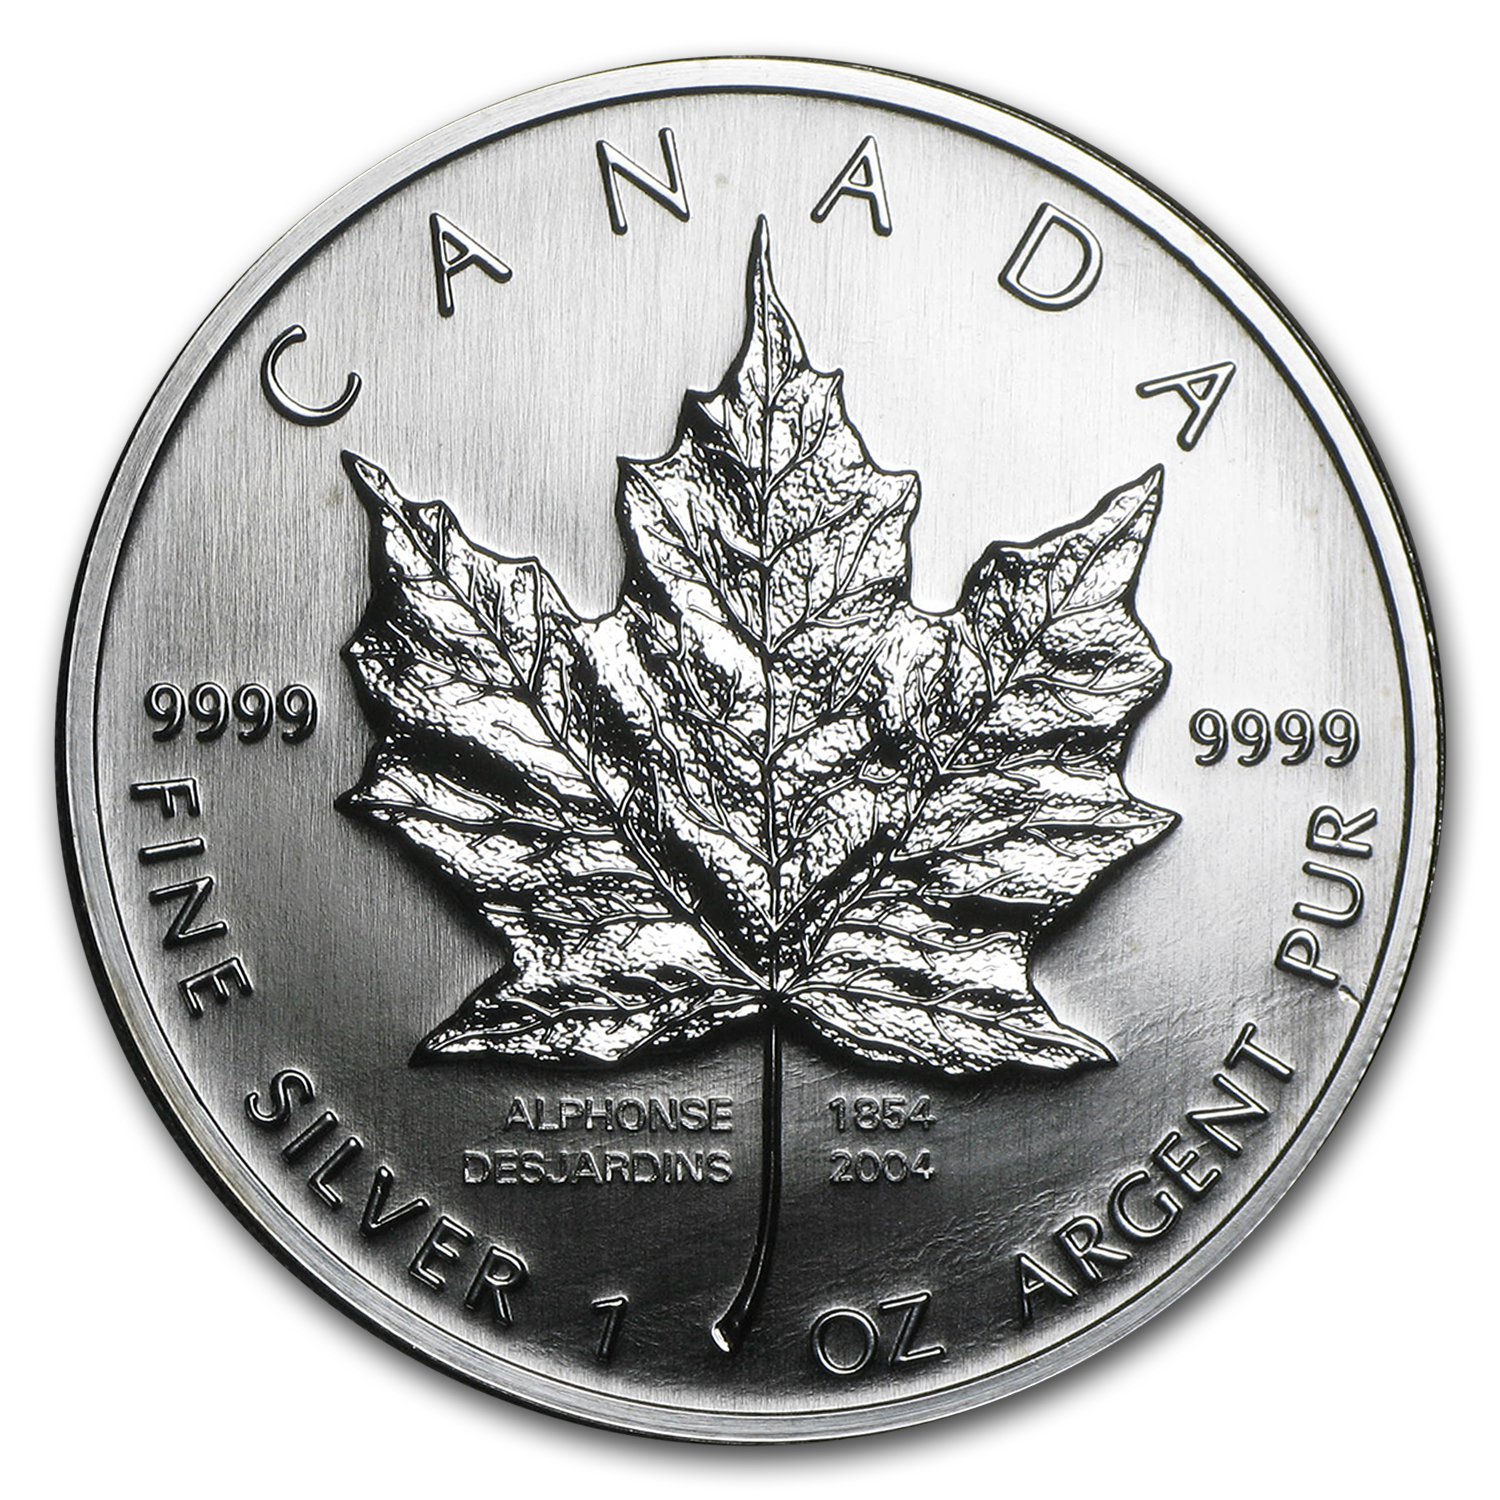 2004 1 oz Silver Canadian Maple Leaf (Desjardins 150th Ann)